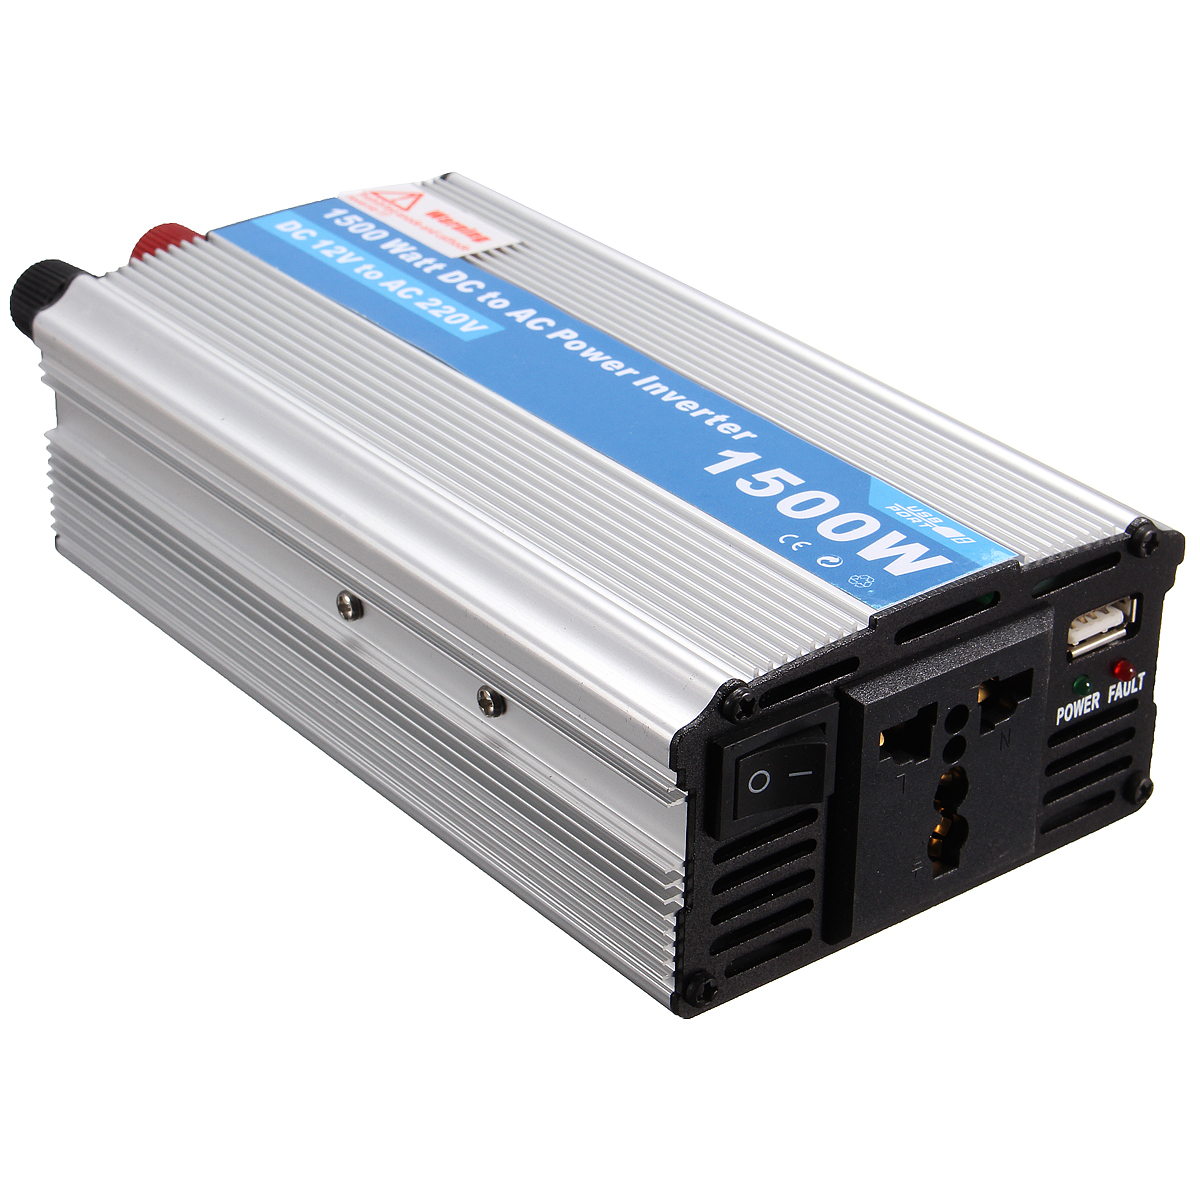 #1A6DB1 INVERTER 1500W Car DC 12V To AC 220V Power Invertor  Best 4823 Inverter Window Ac photos with 1200x1200 px on helpvideos.info - Air Conditioners, Air Coolers and more